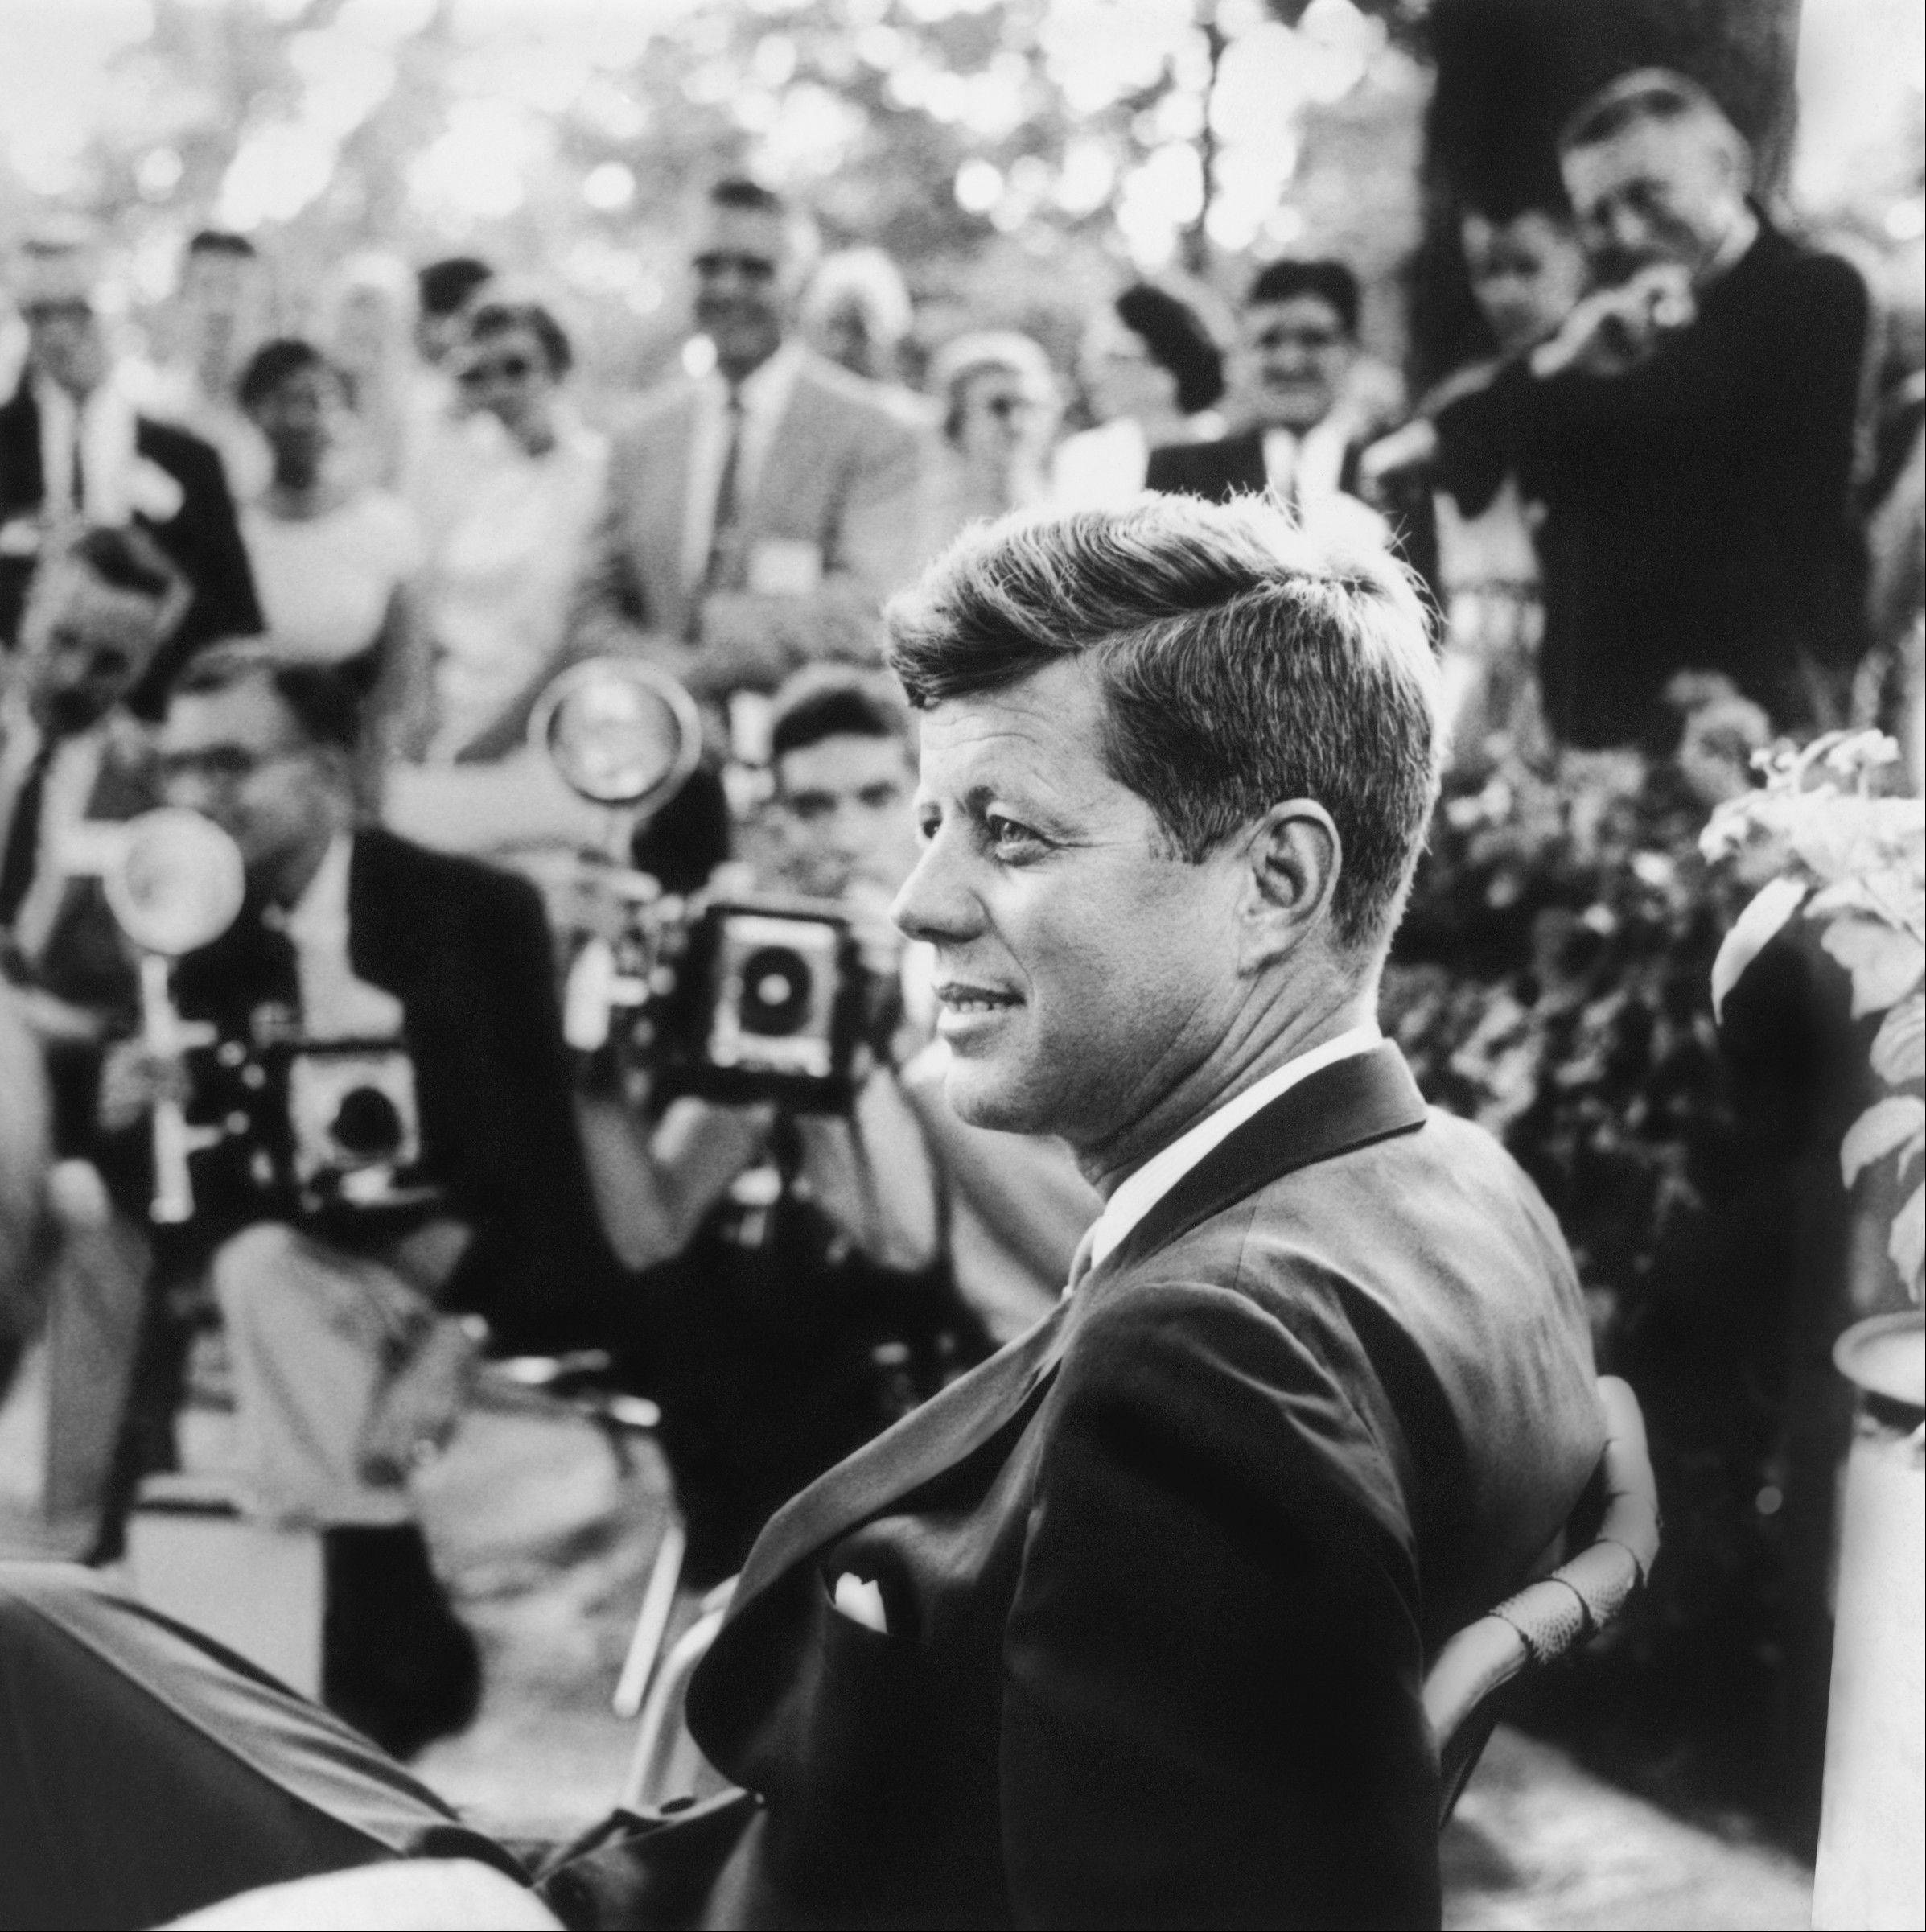 This year marks the 50th anniversary of the assassination of President John F. Kennedy, shown here at a news conference in Omaha, Neb., in 1959.